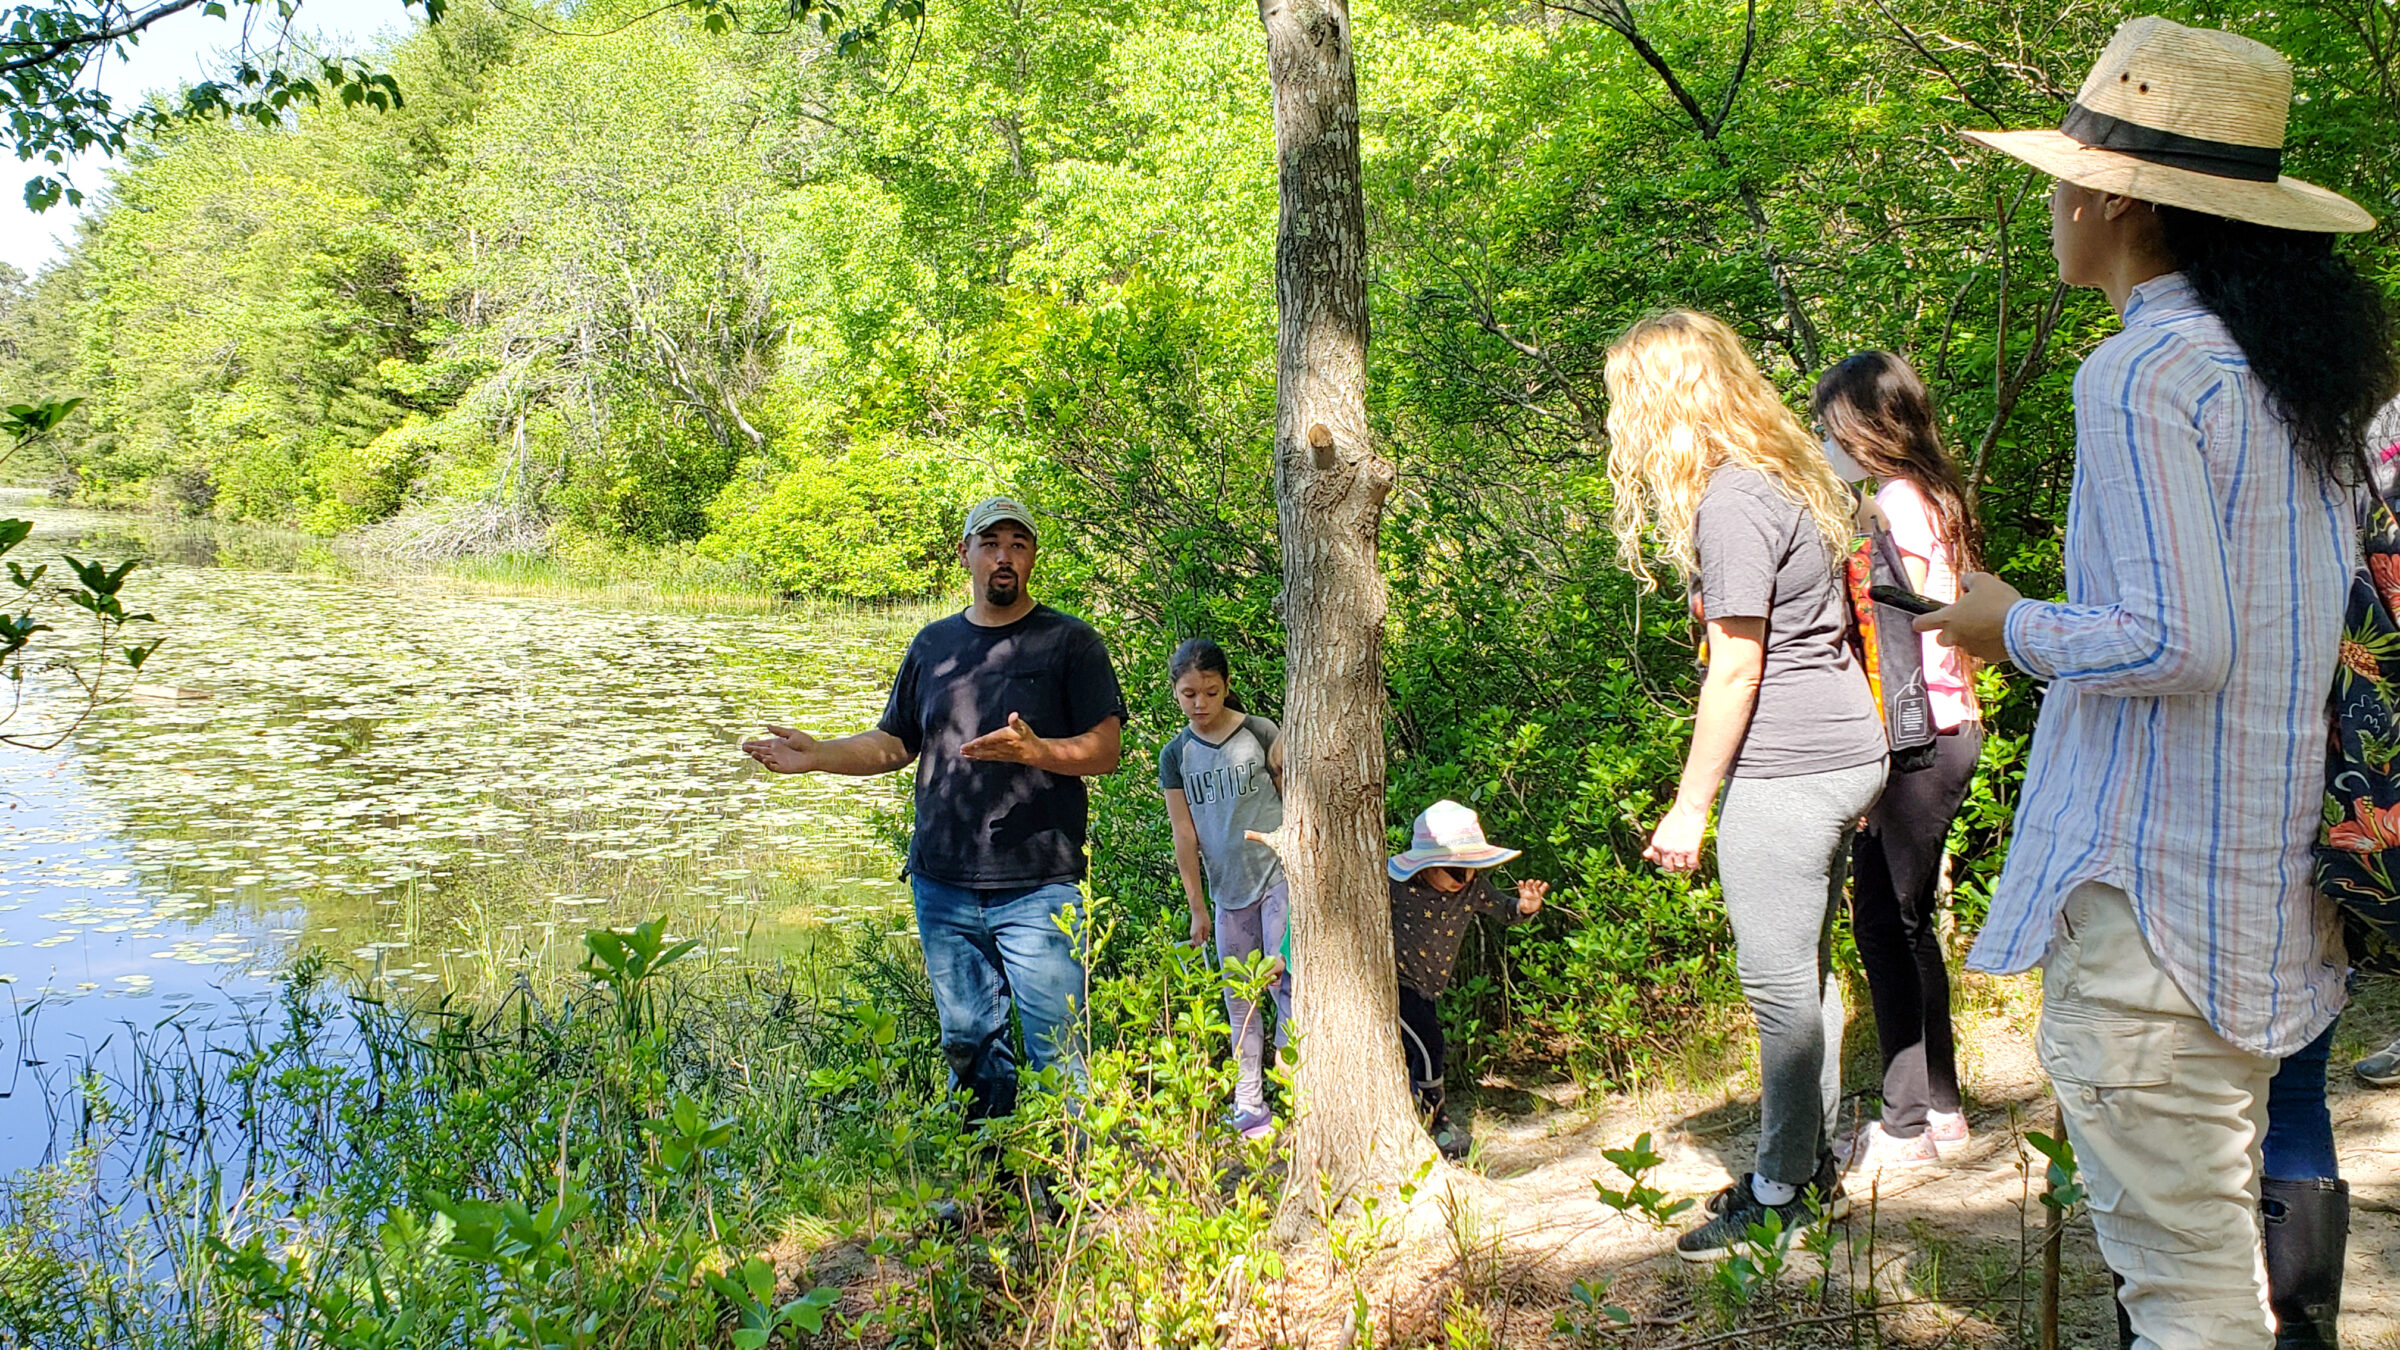 Pine Barrens educator leading a group hike of people around a pond